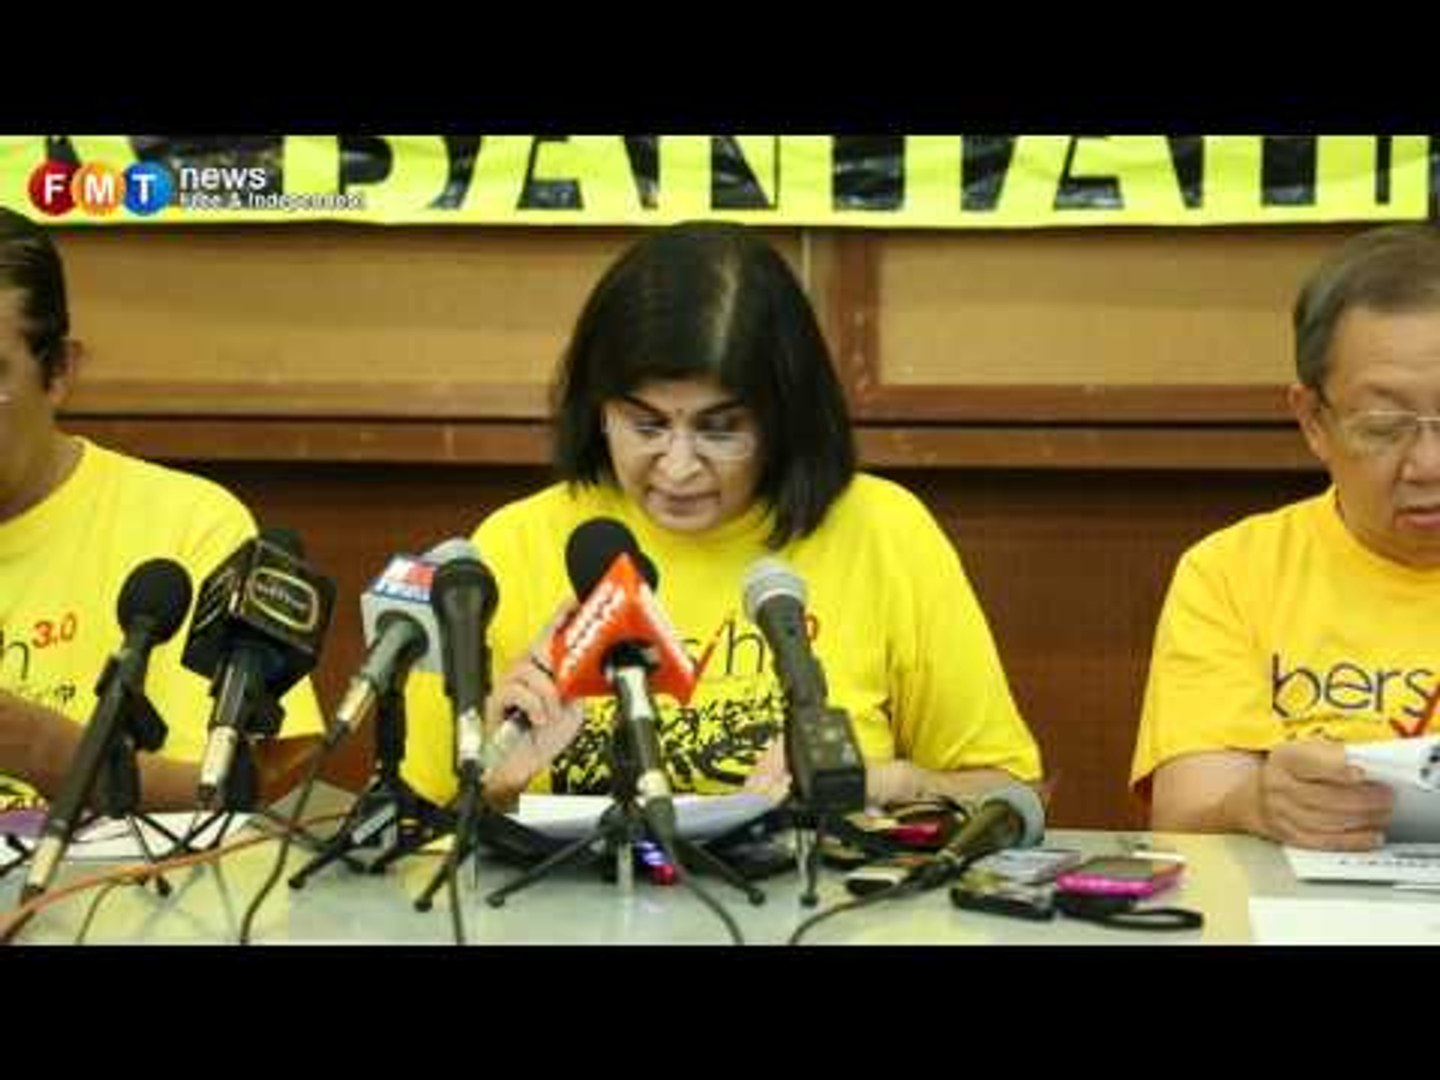 Court order and barriers won't stop Bersih